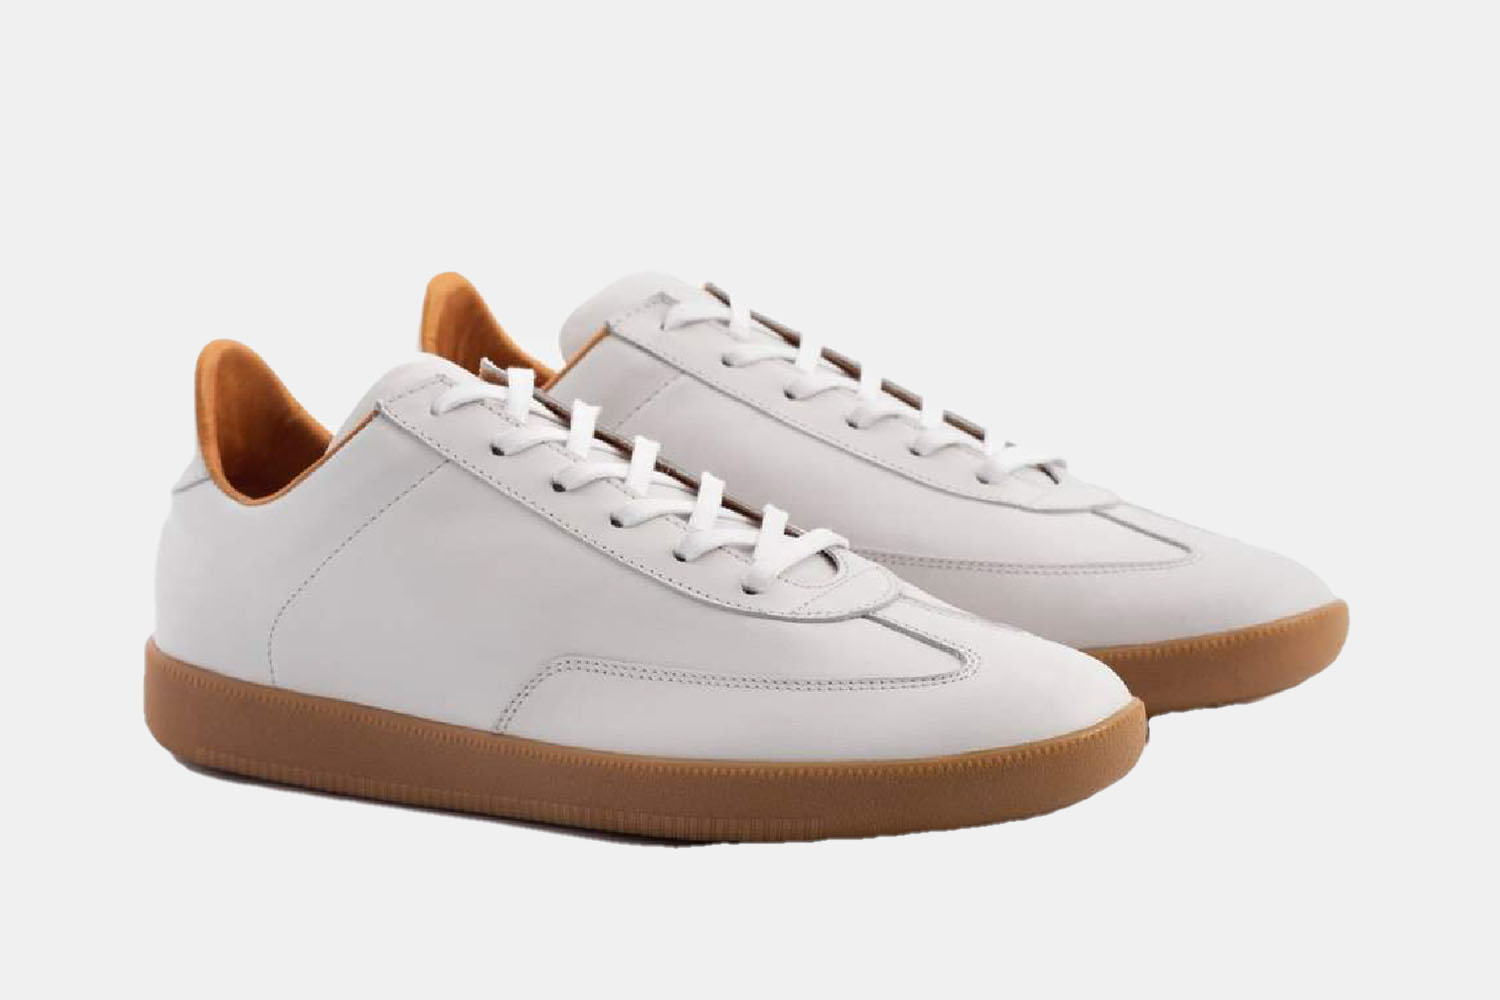 A white and gum soled sneaker.